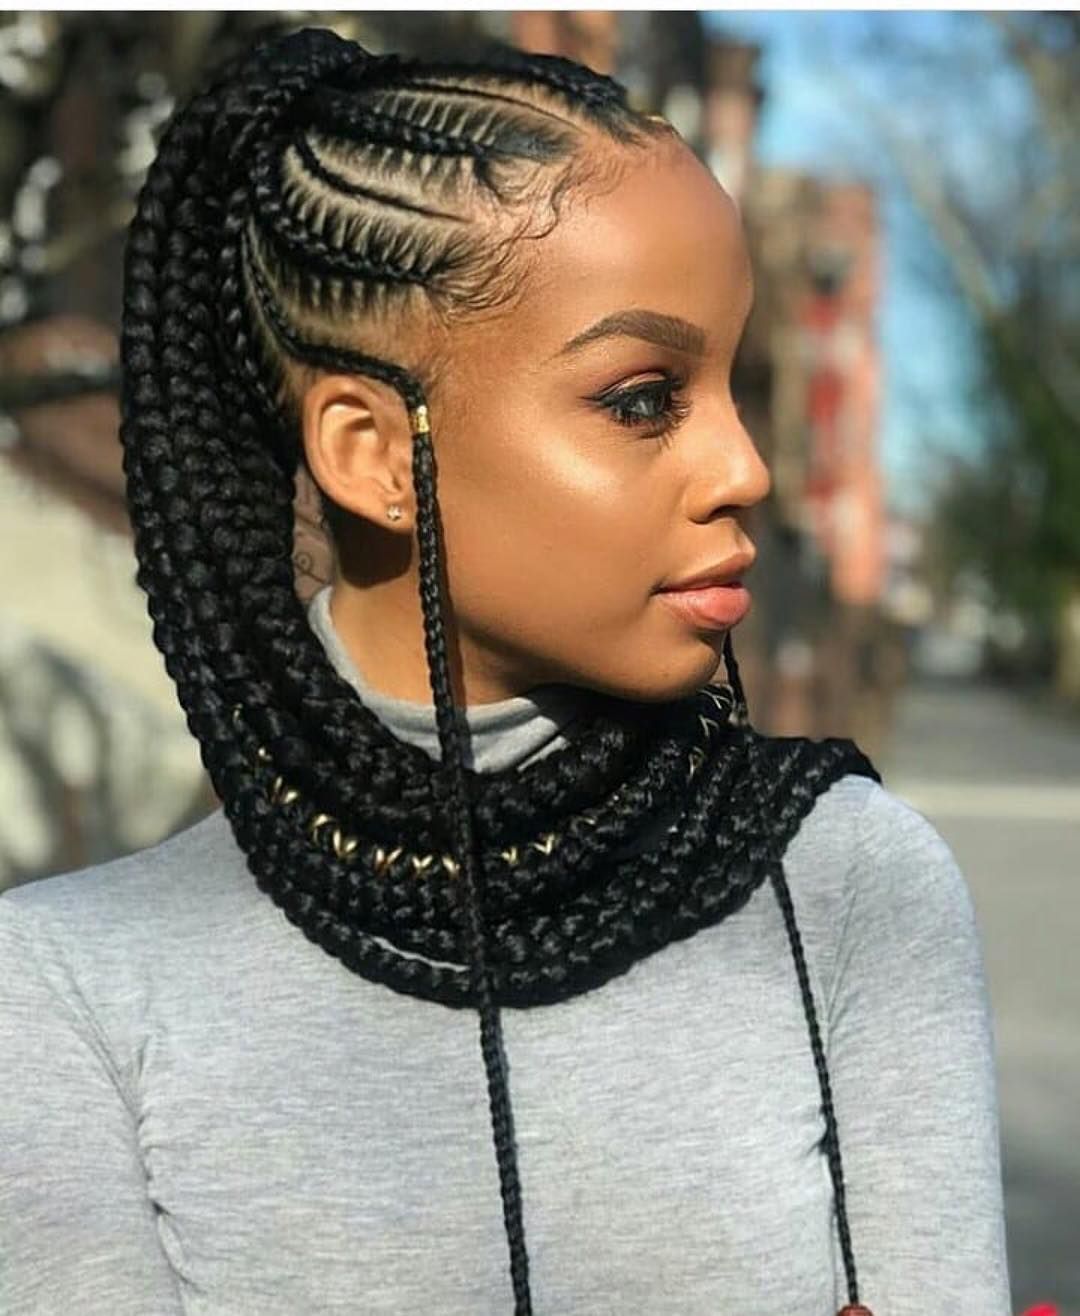 Ghanaianhairstyles Braided Ponytail Feedinbraids Braids By Braided Kitagirl921 Braided Ponytail Hairstyles Cornrow Hairstyles Braids For Black Hair